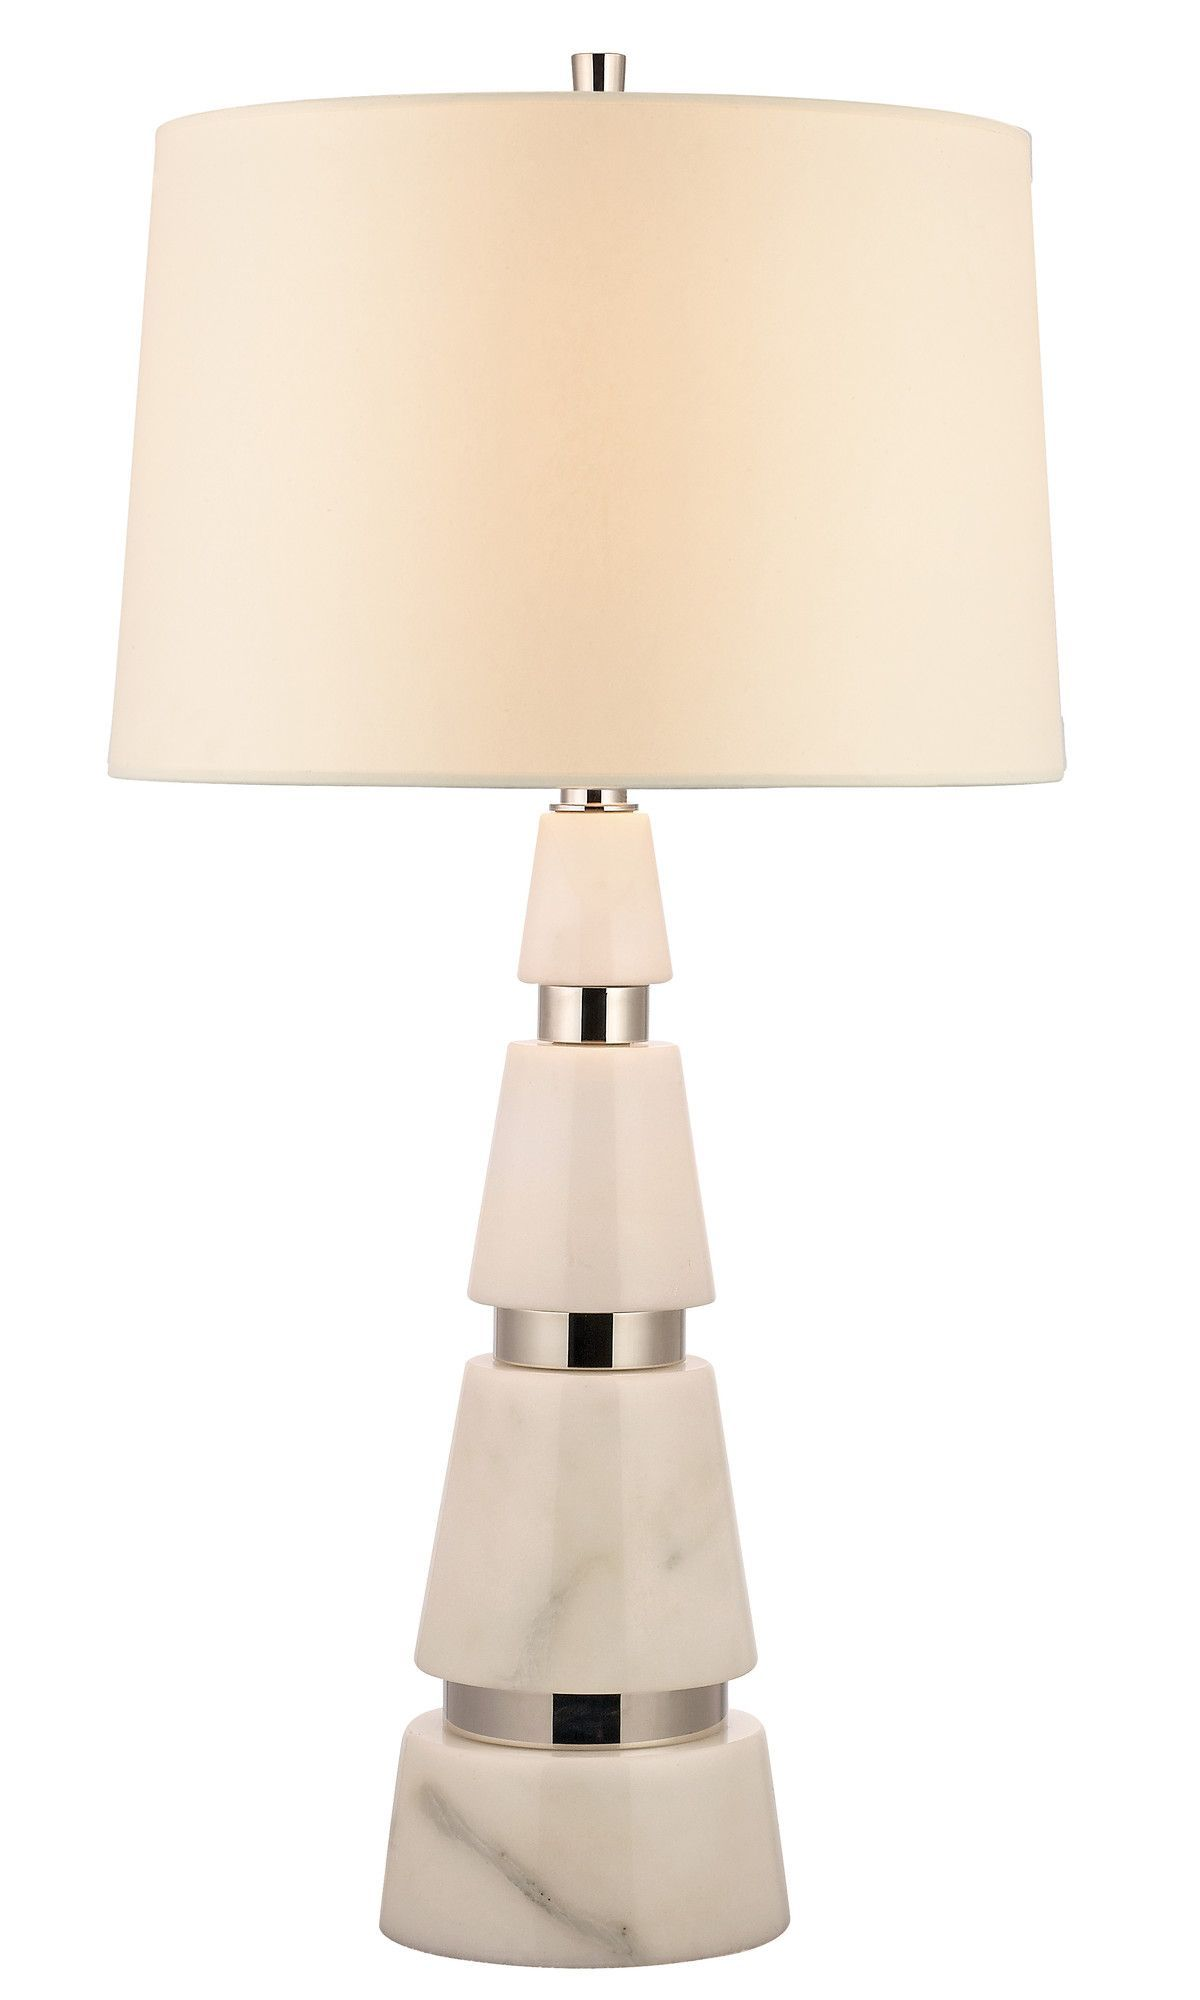 "Modena 1 Light 32.25"" H Table Lamp with Empire Shade"